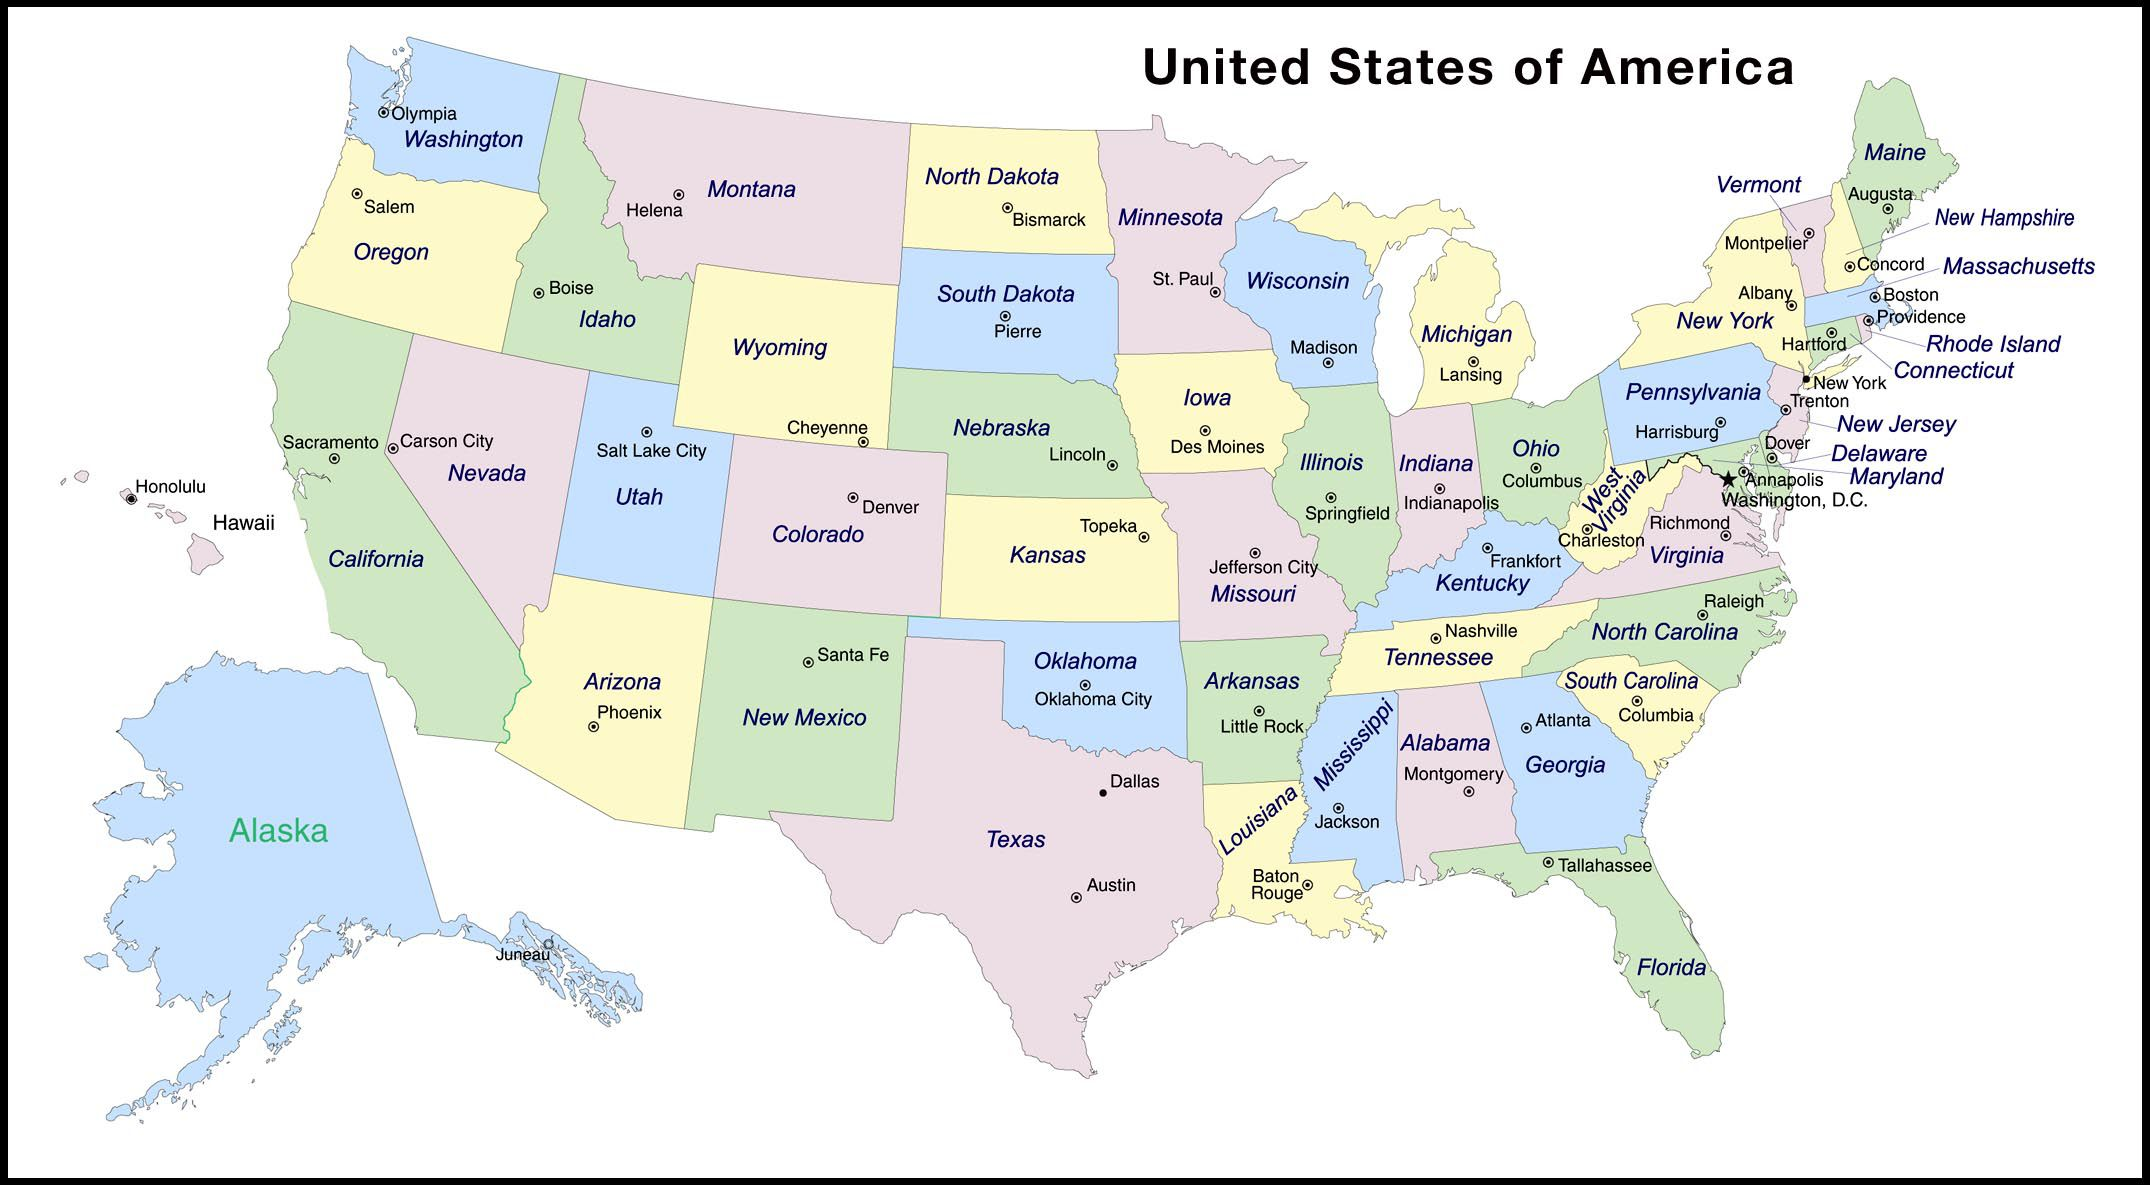 States And Capitals Of The United States